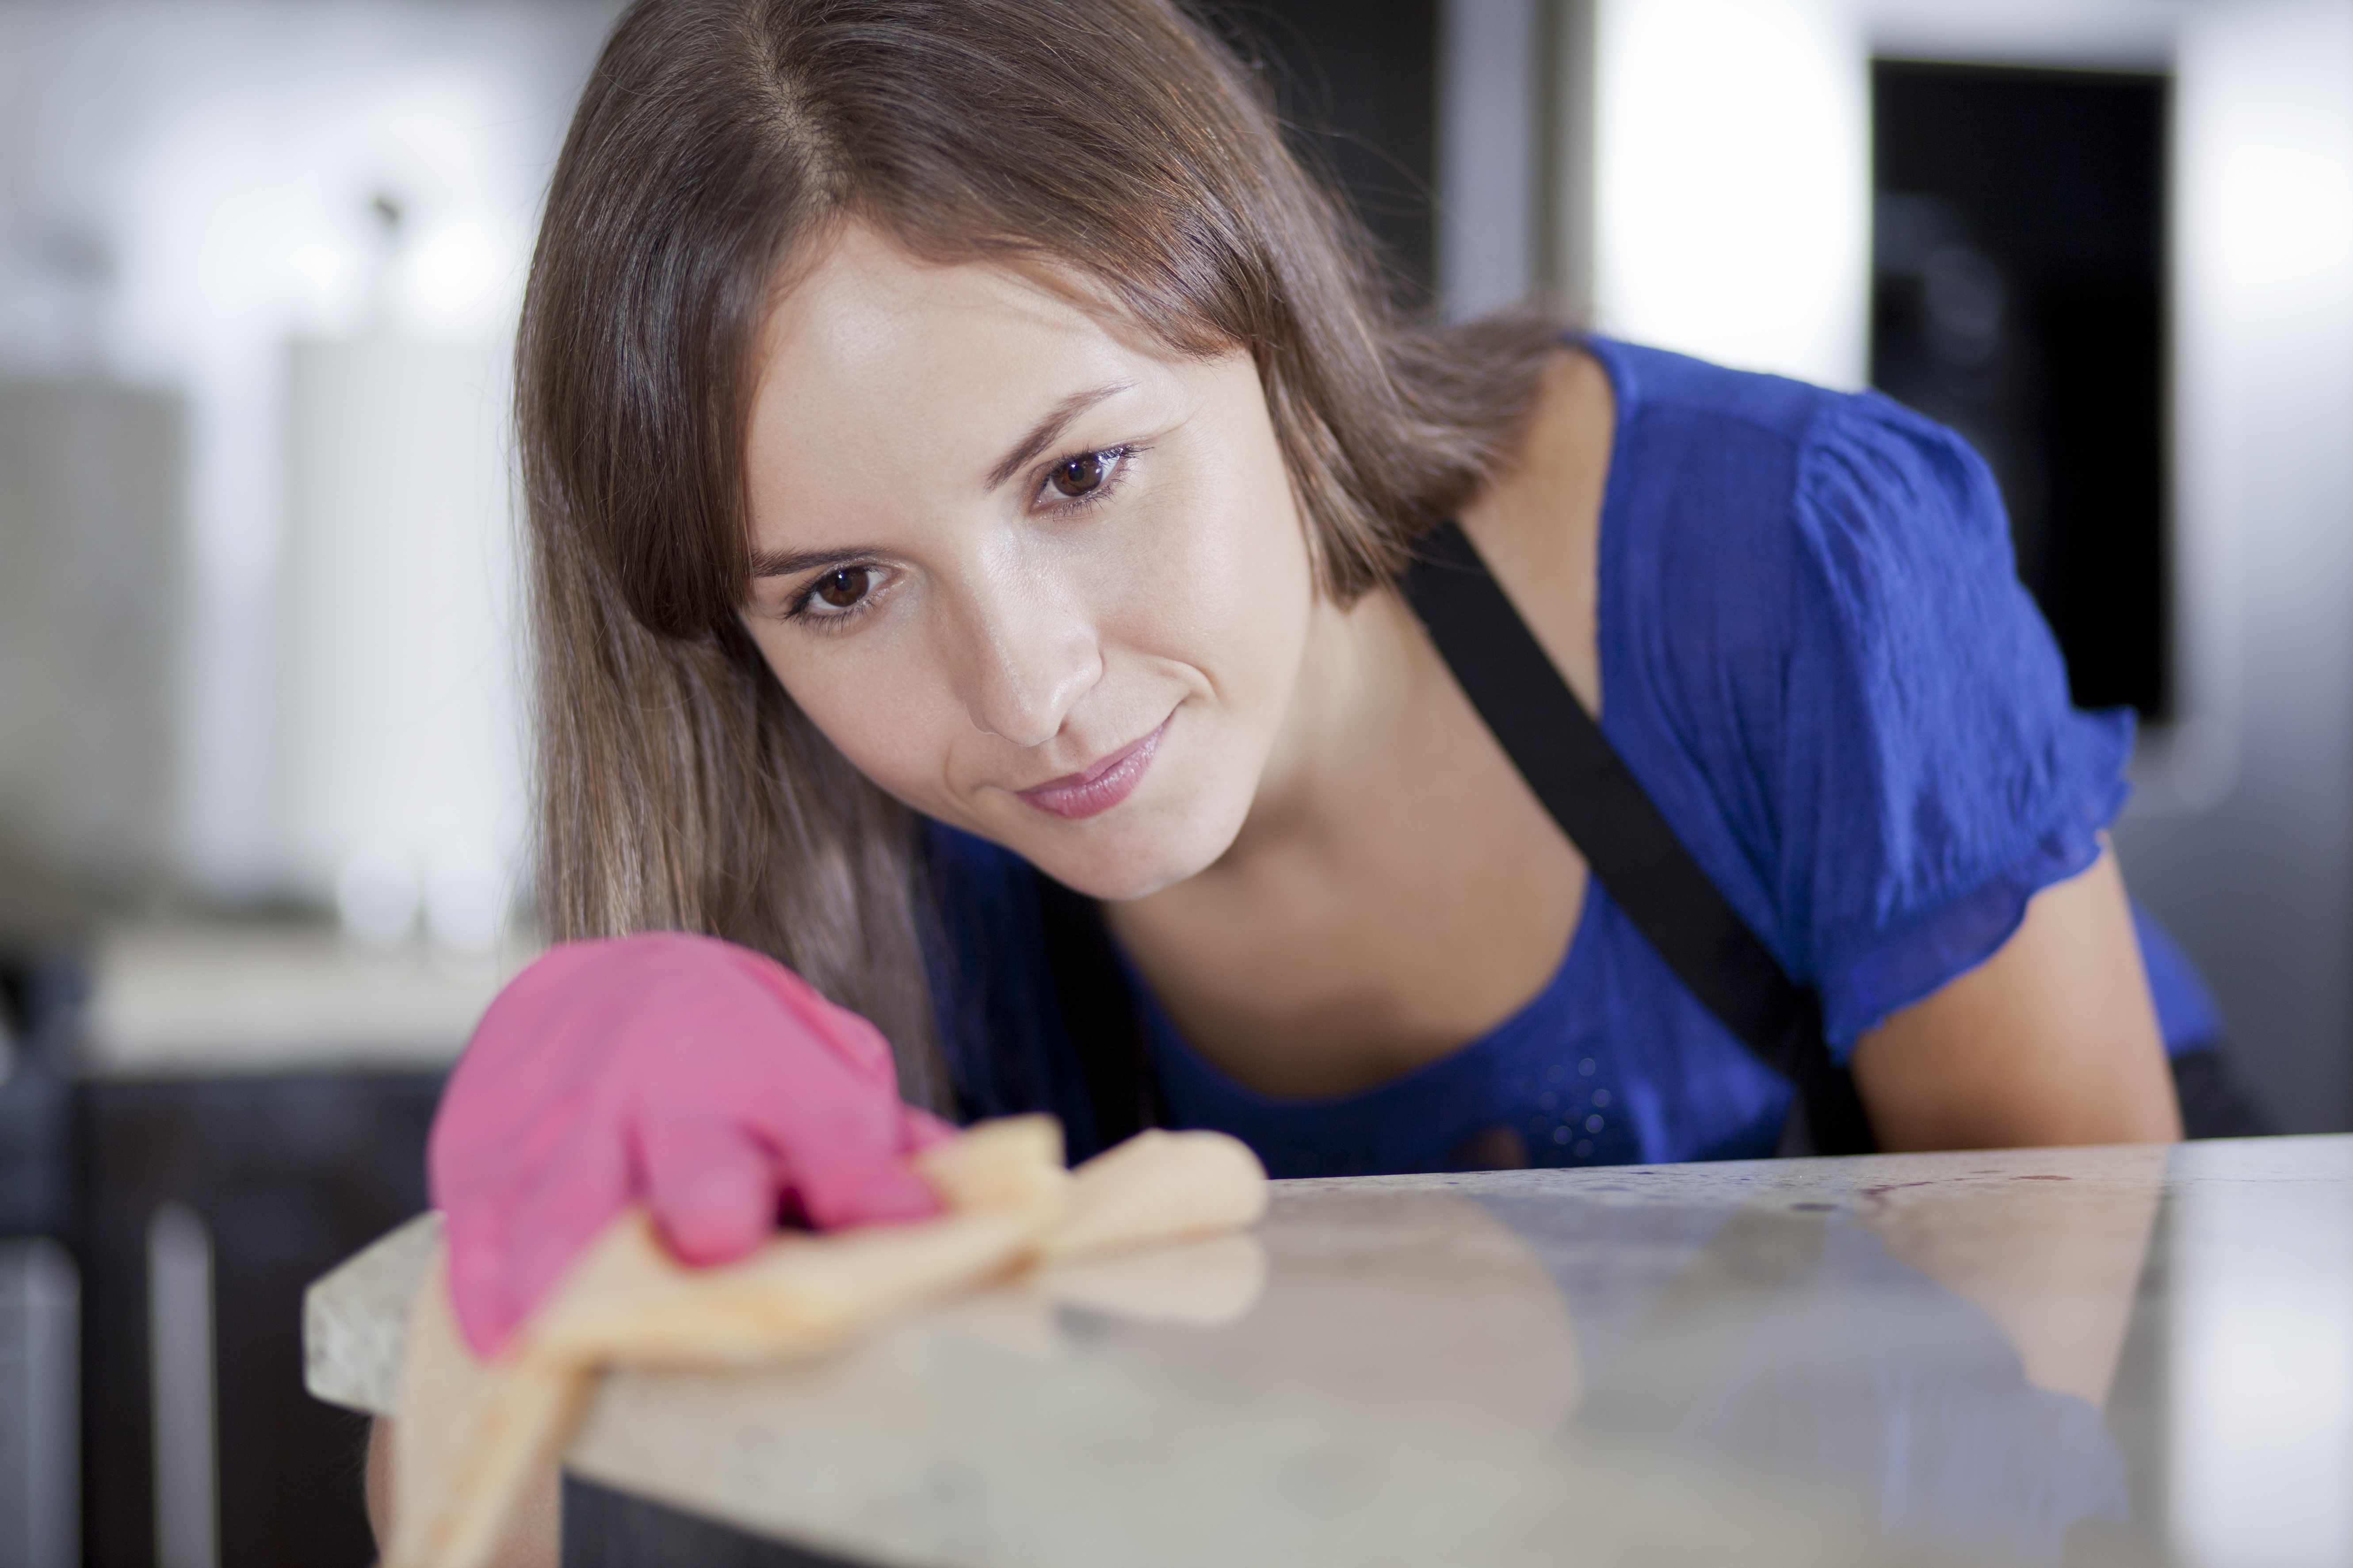 cleaning-services-and-supplies-business-for-sale-70-000-1